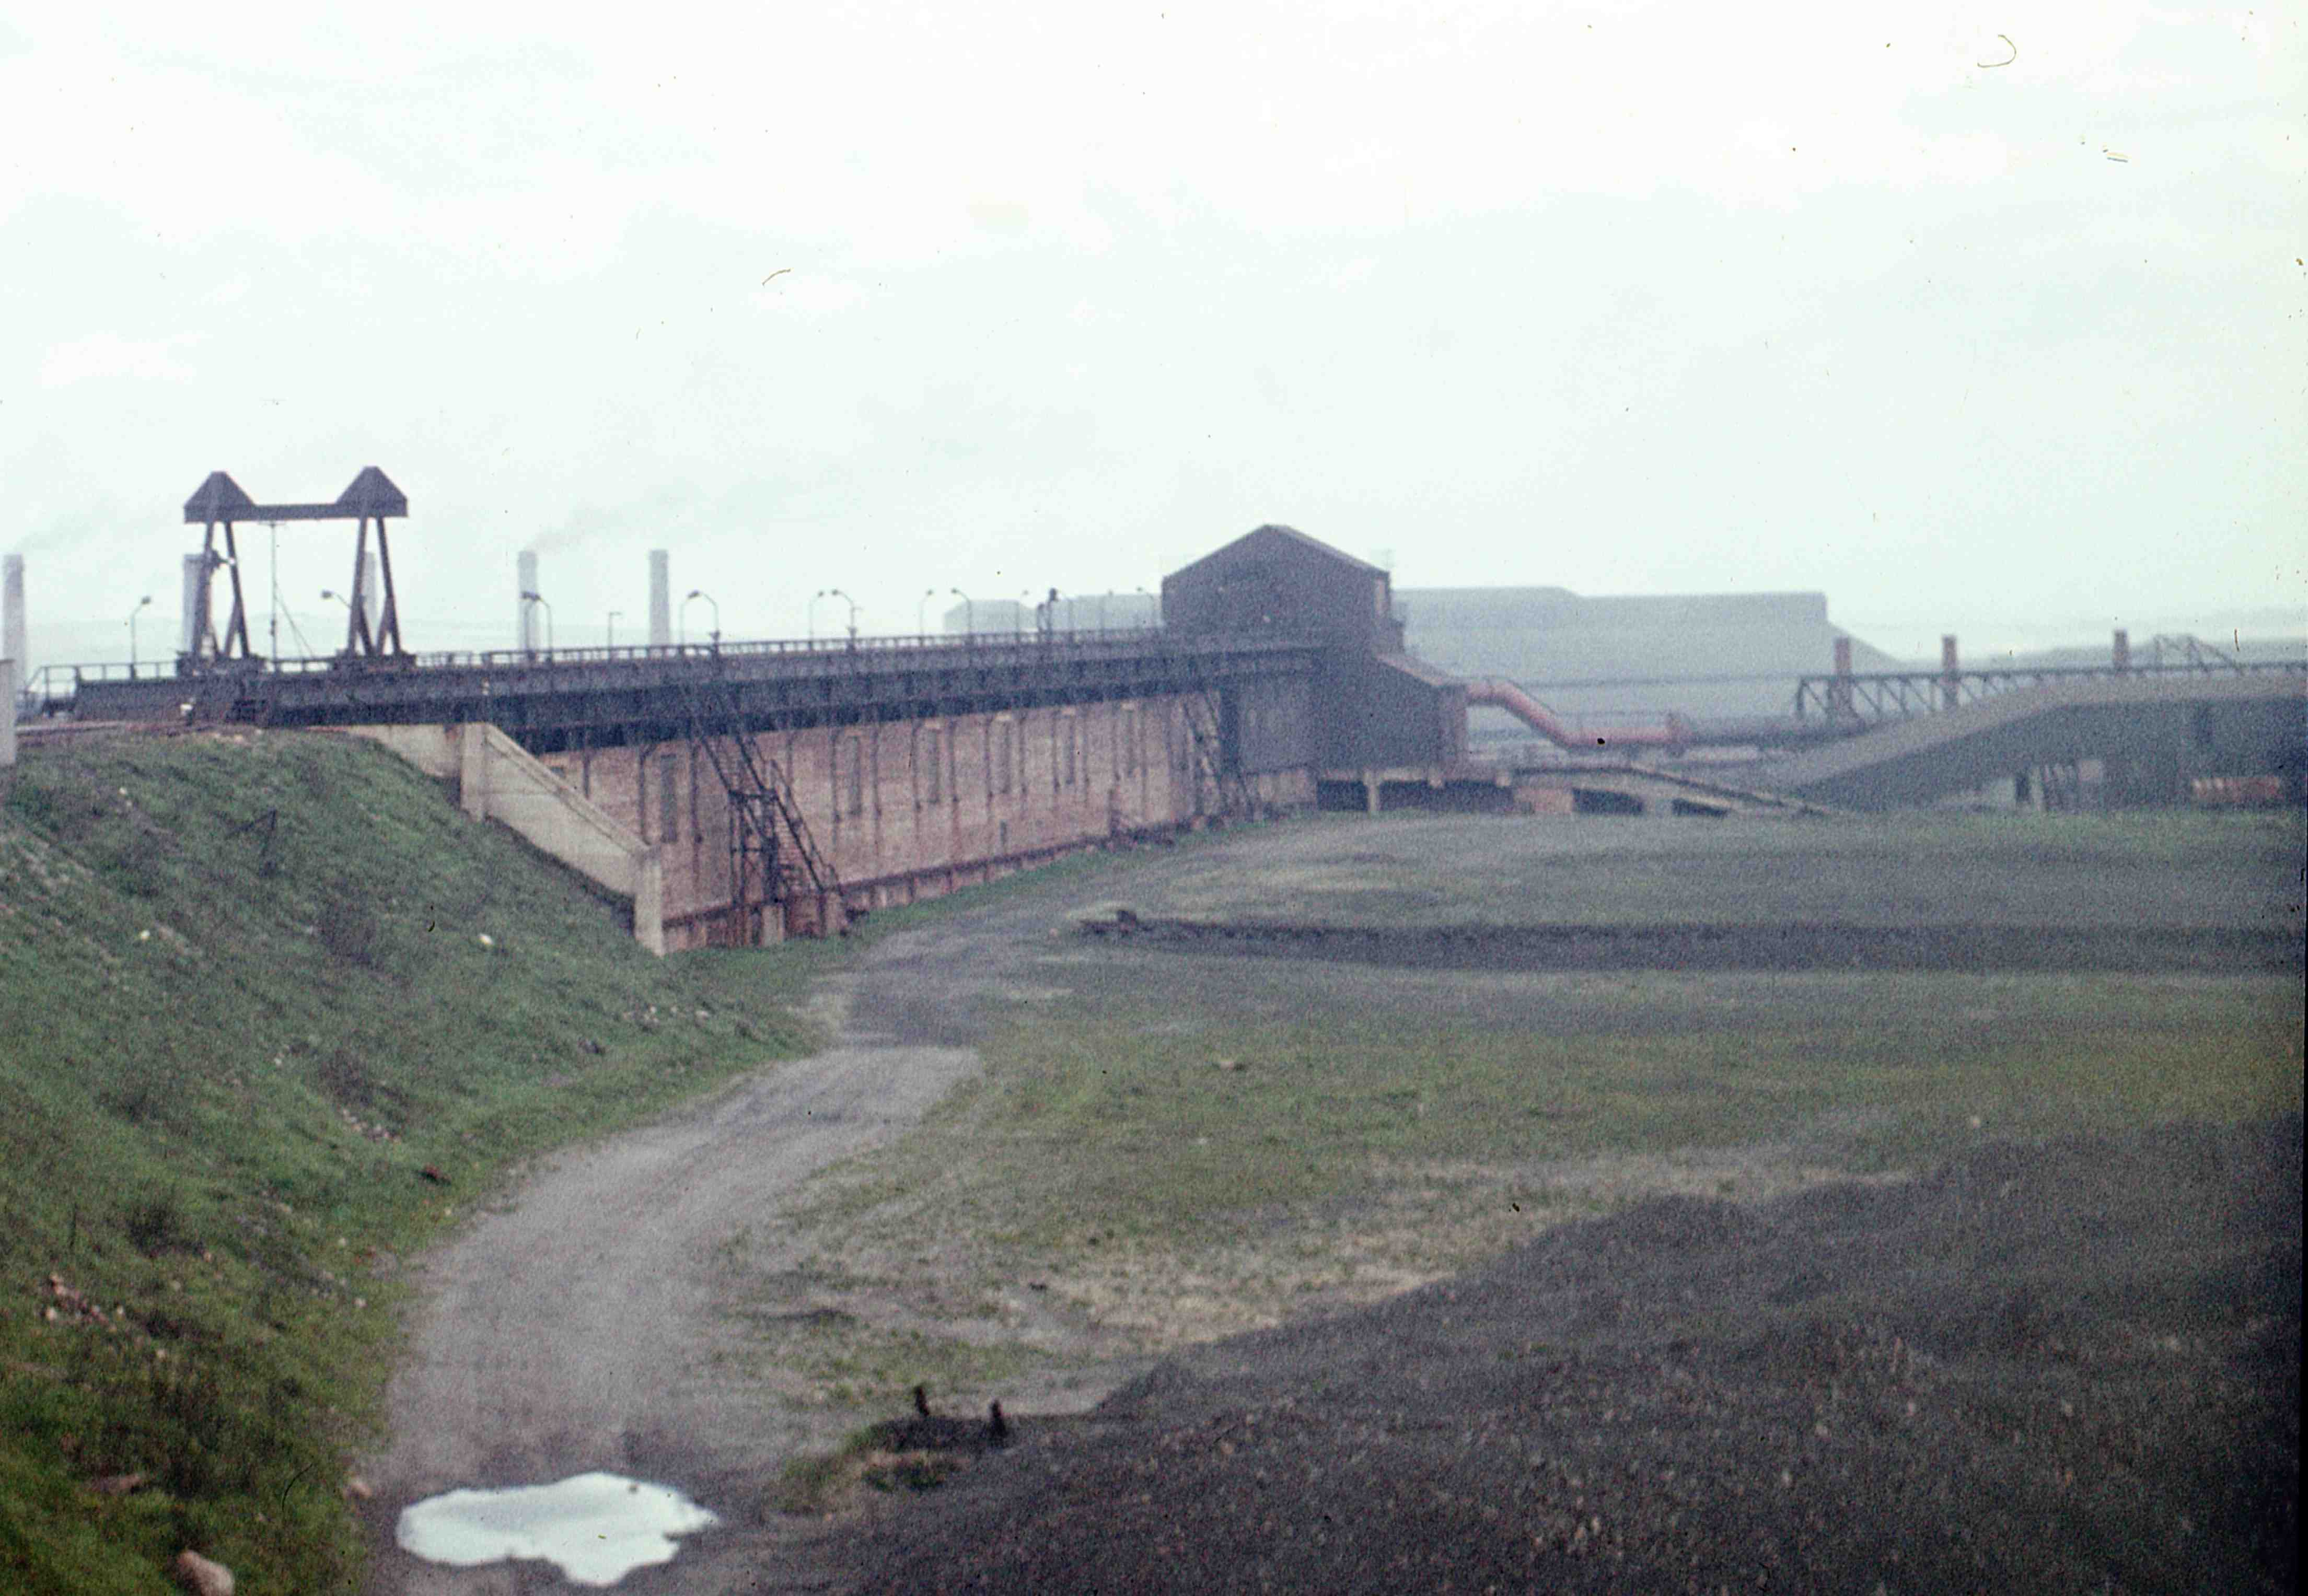 al_Consett_Ironworks_unloading_facilies_4may63_blow-up